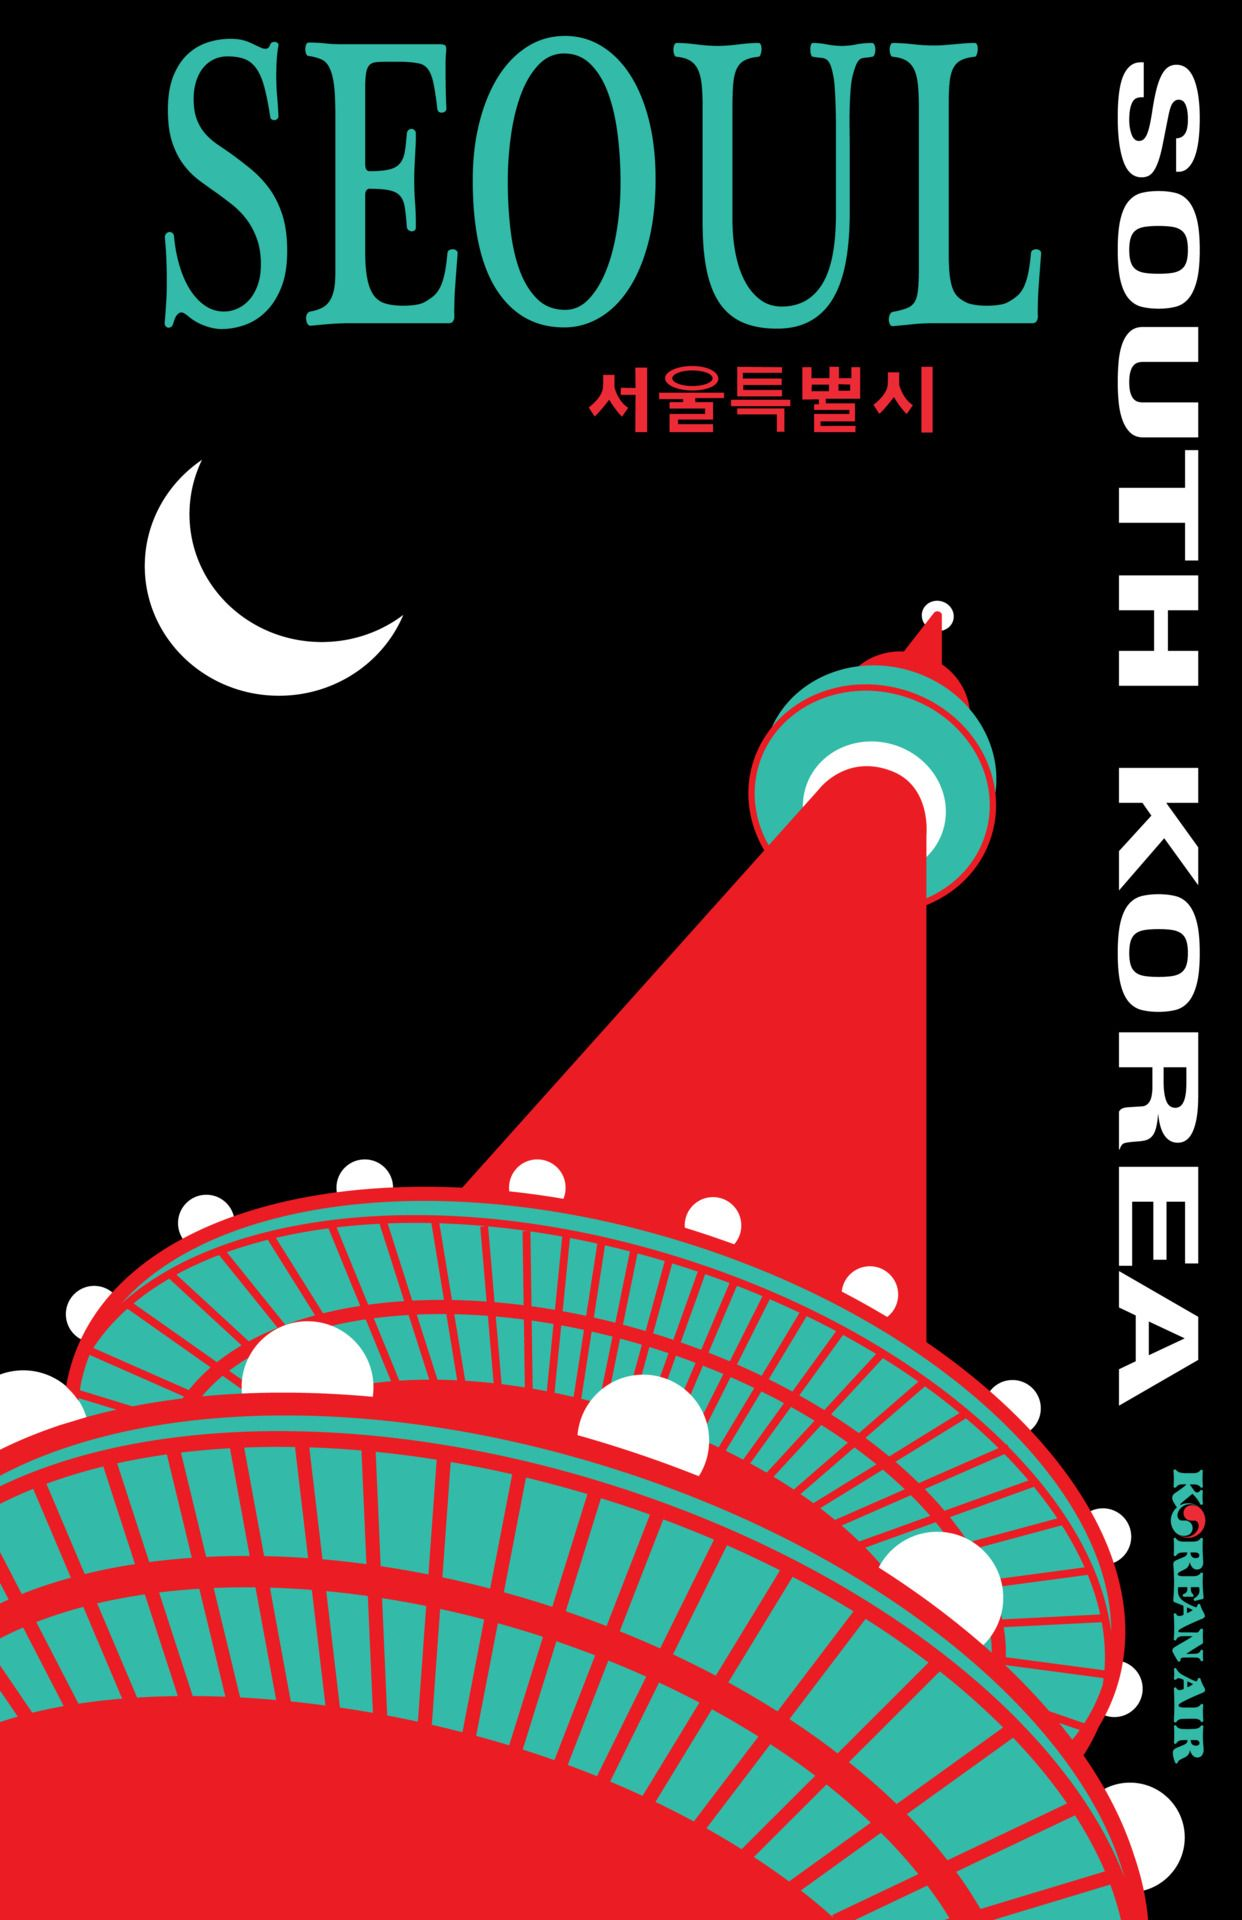 Seoul This Would Be Such A Cool Poster To Have In Your Home Korea Www Travel4life Club Tourism Poster Retro Travel Poster Travel Prints